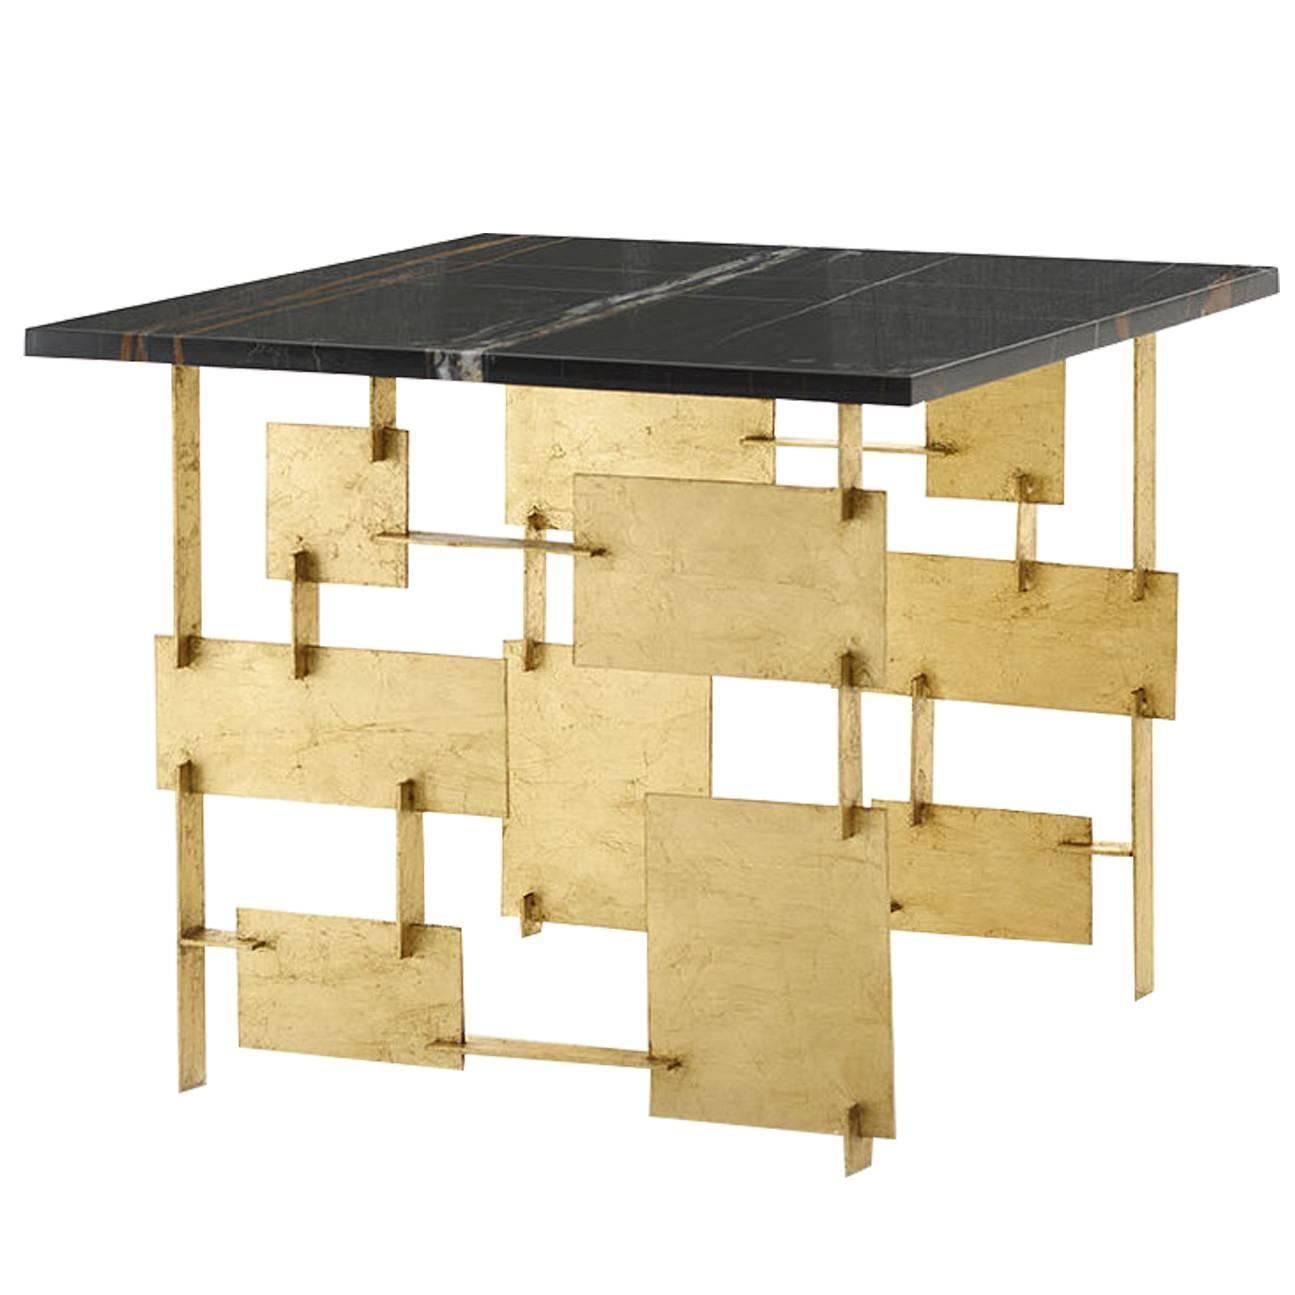 Low marble table for sale at 1stdibs for Loft via savona 97